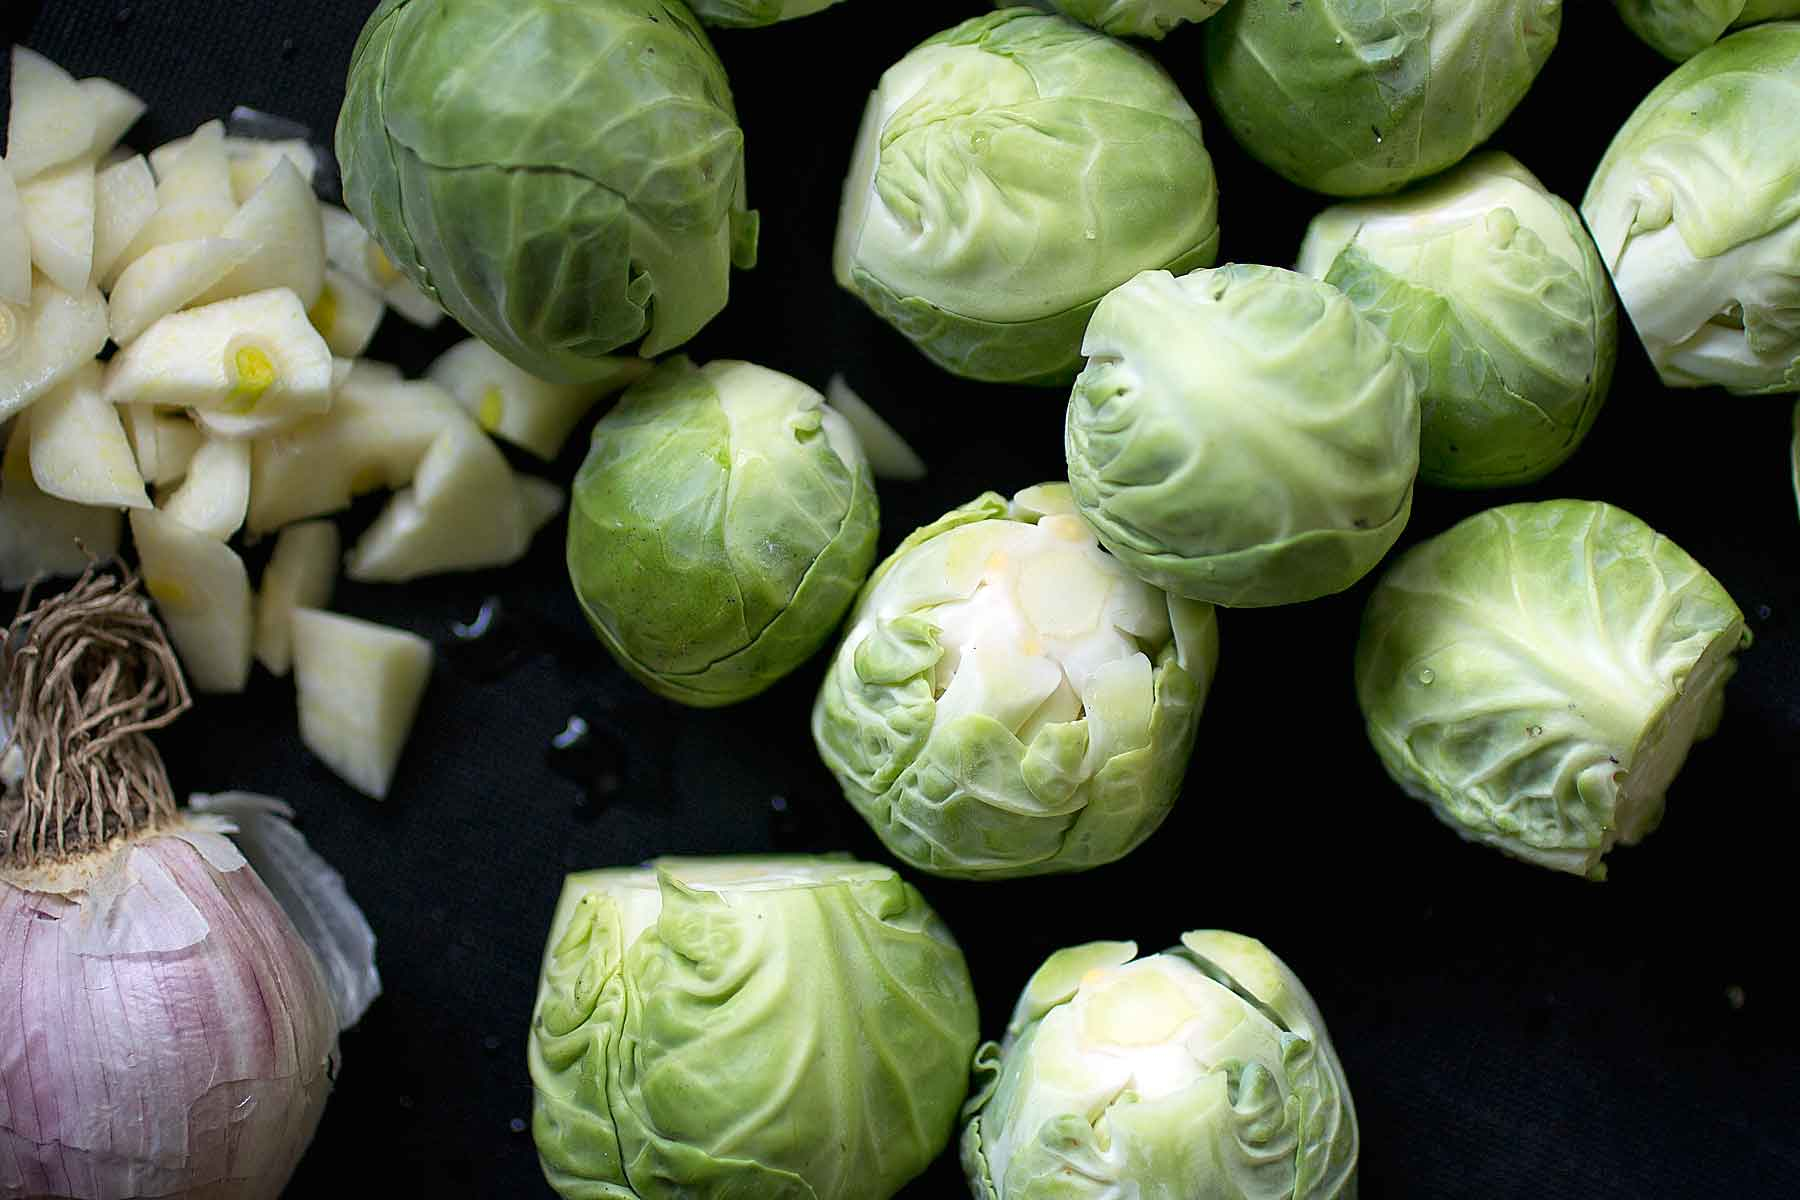 Prepping brussel sprouts and garlic for pan fried brussel sprouts